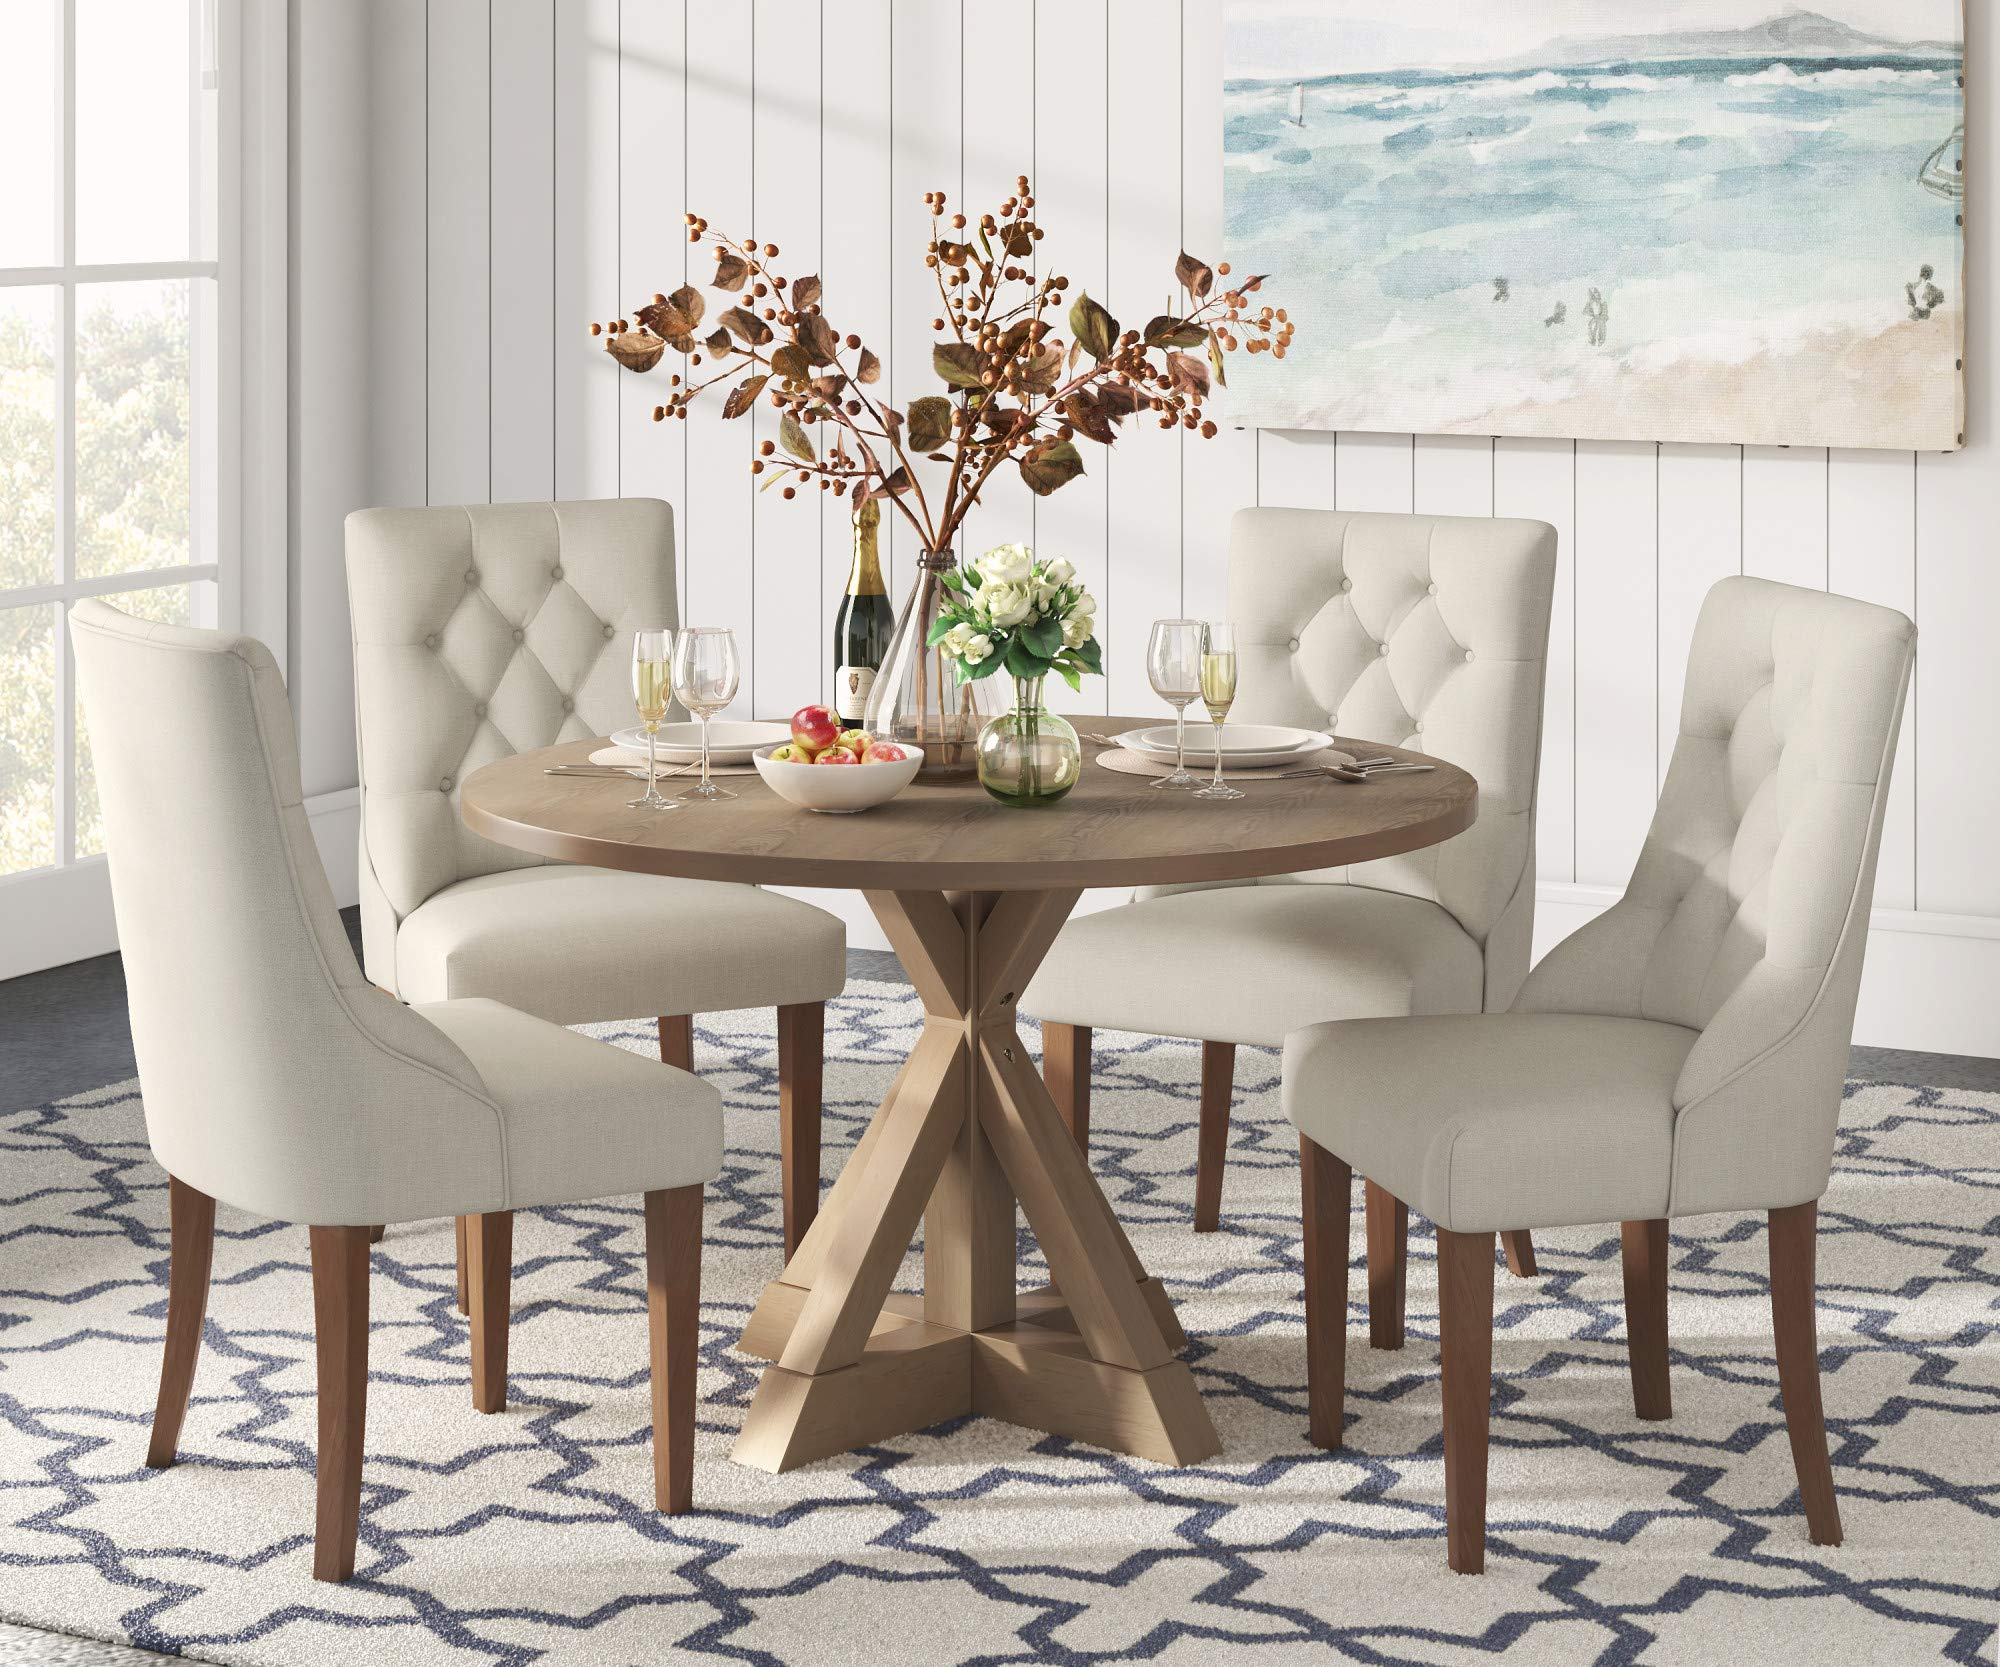 Finch Alfred Round Solid Wood Rustic Dining Table for Farmhouse ...